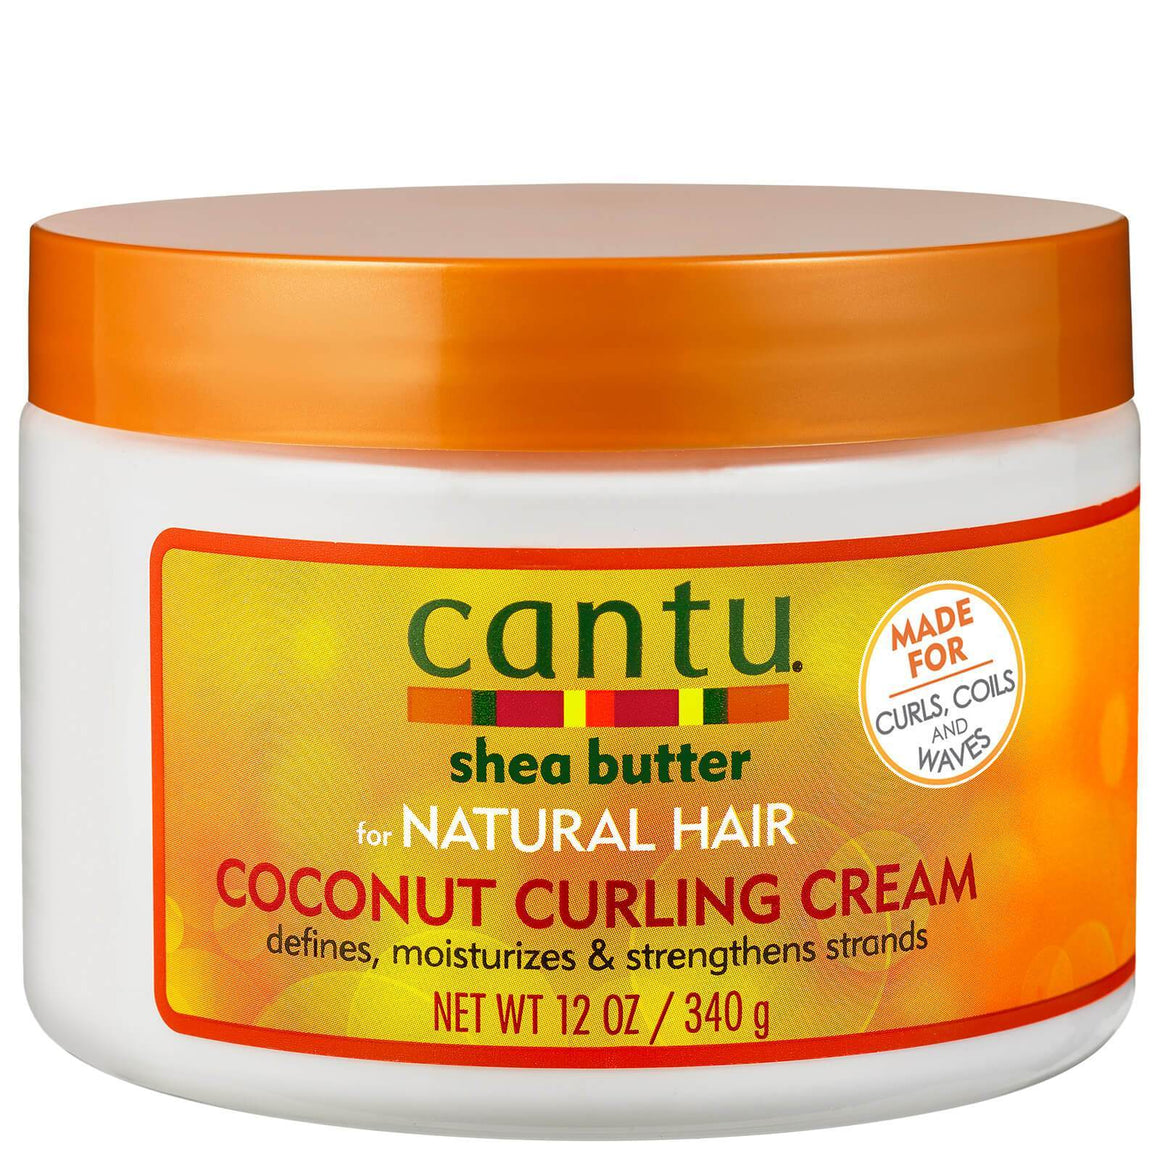 CANTU COCONUT CURLING CREAM, 340 G